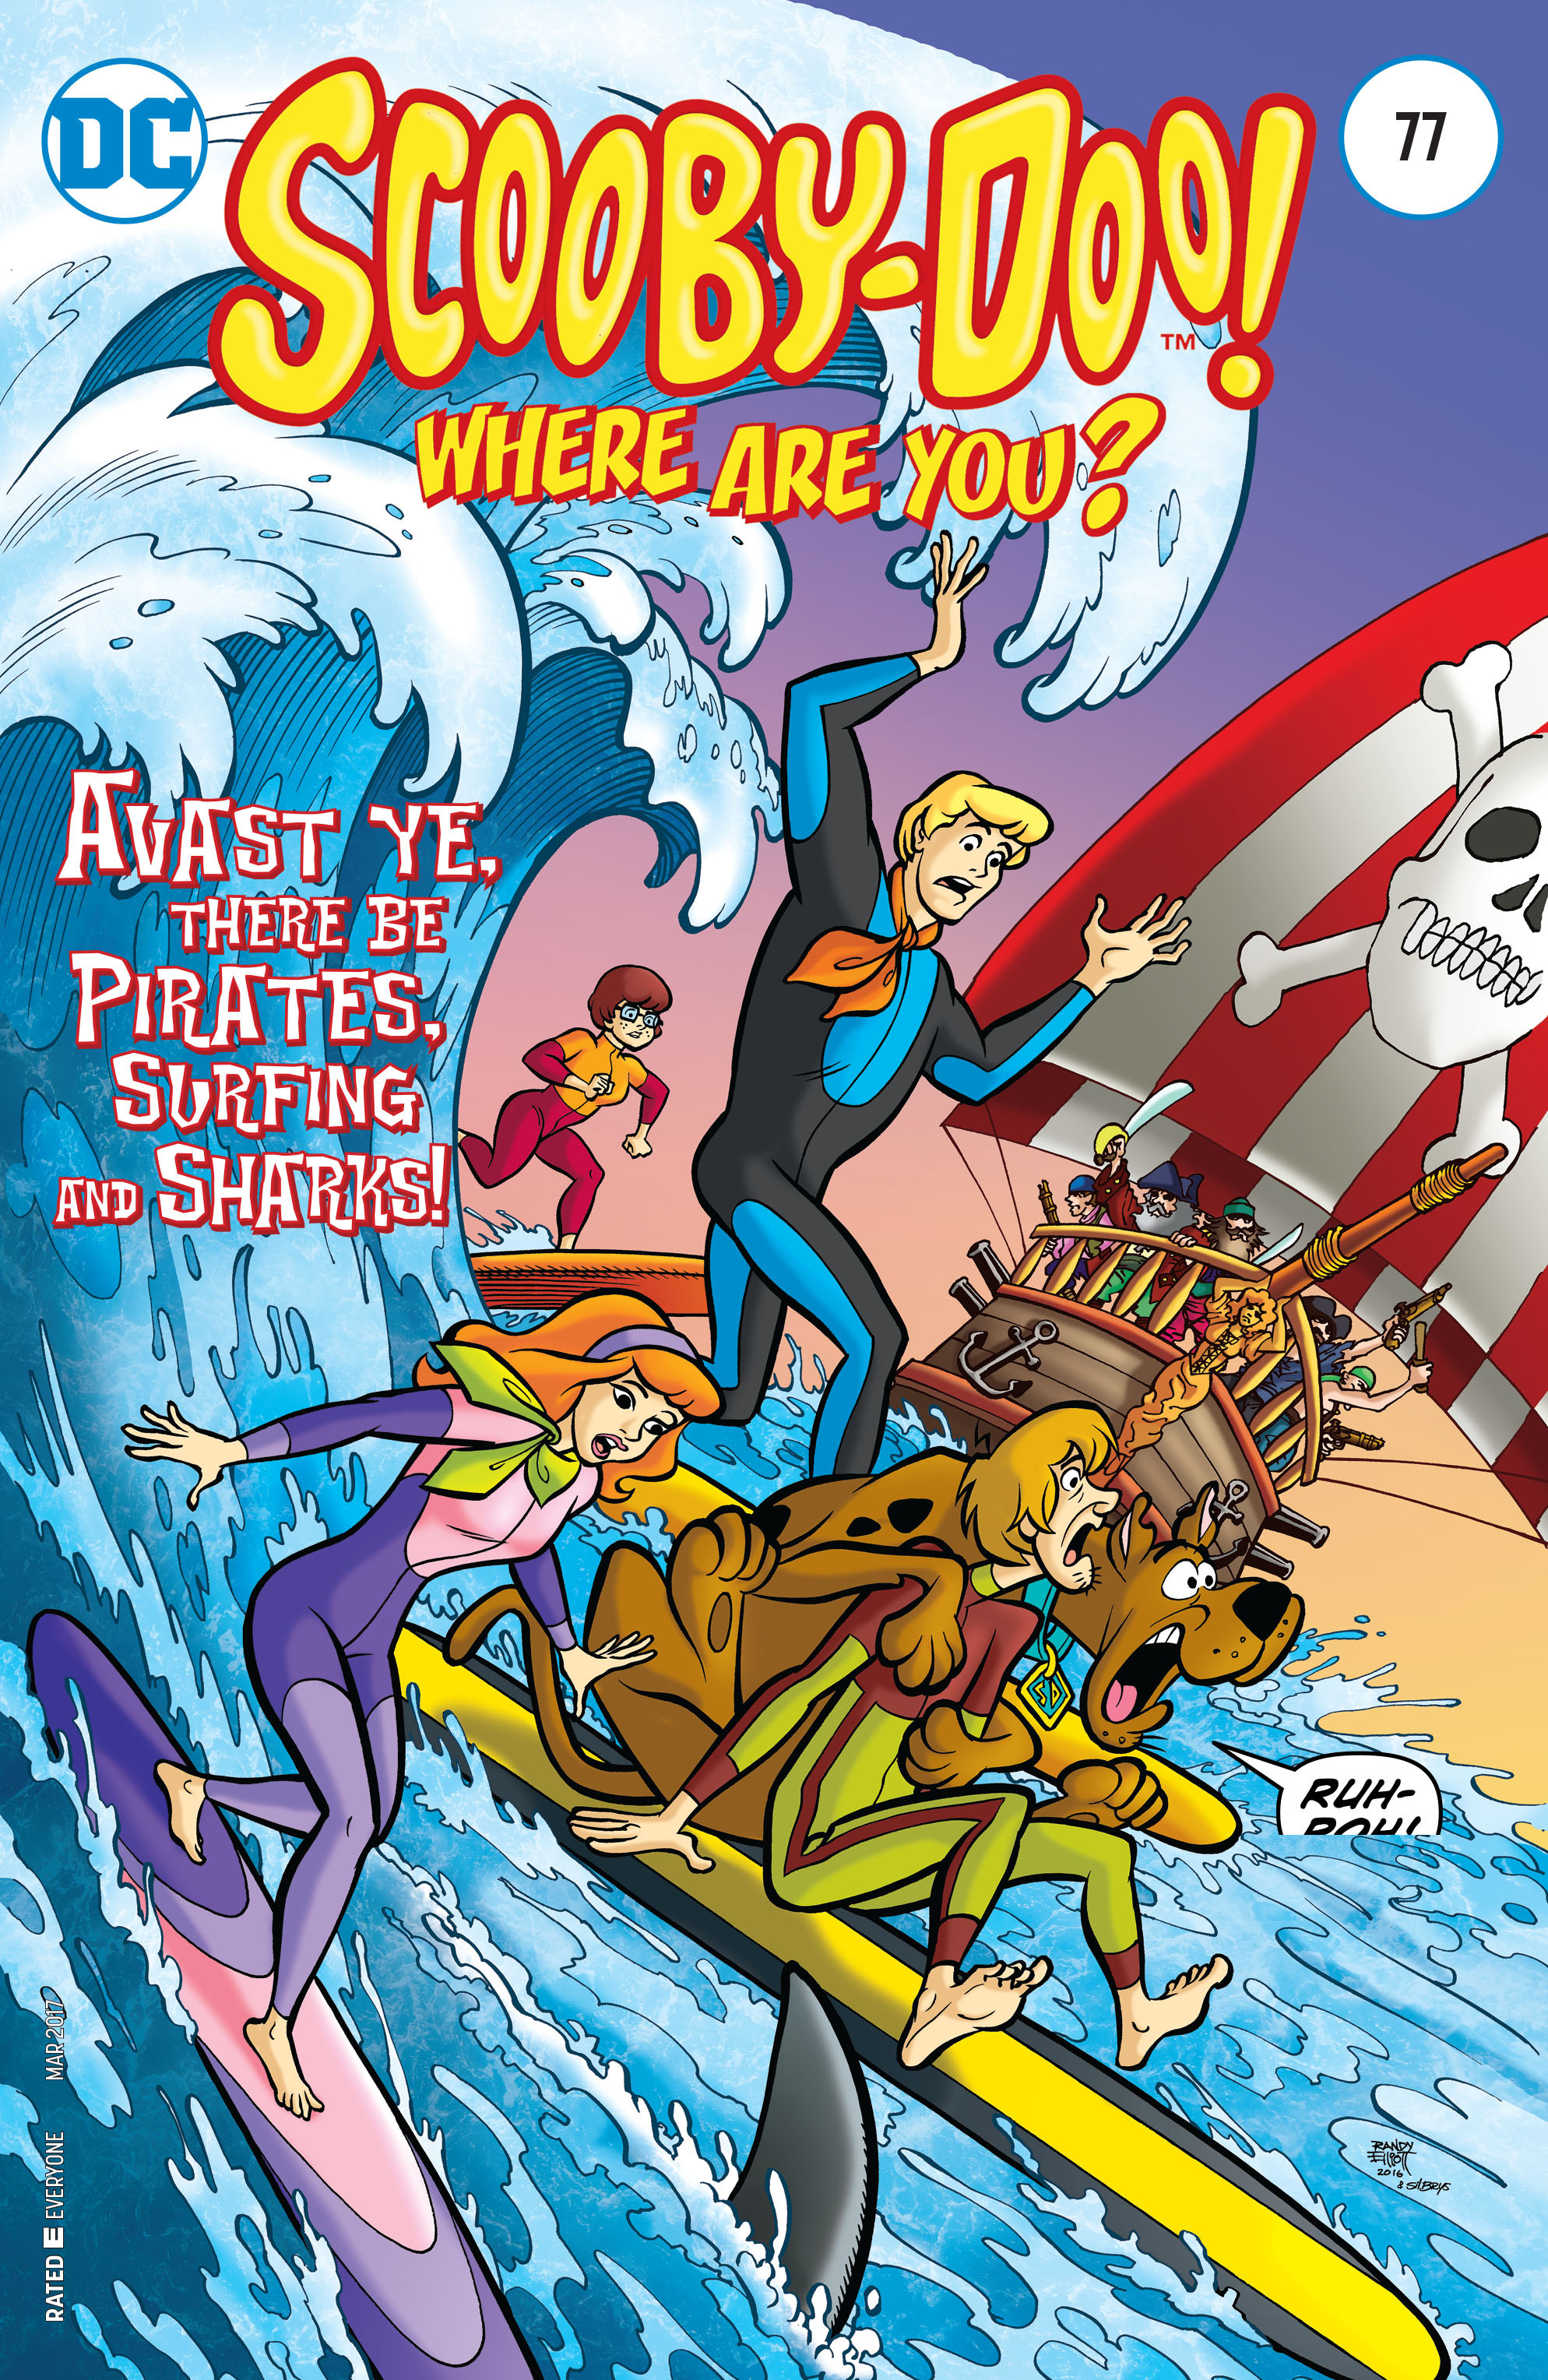 Read online Scooby-Doo: Where Are You? comic -  Issue #77 - 1